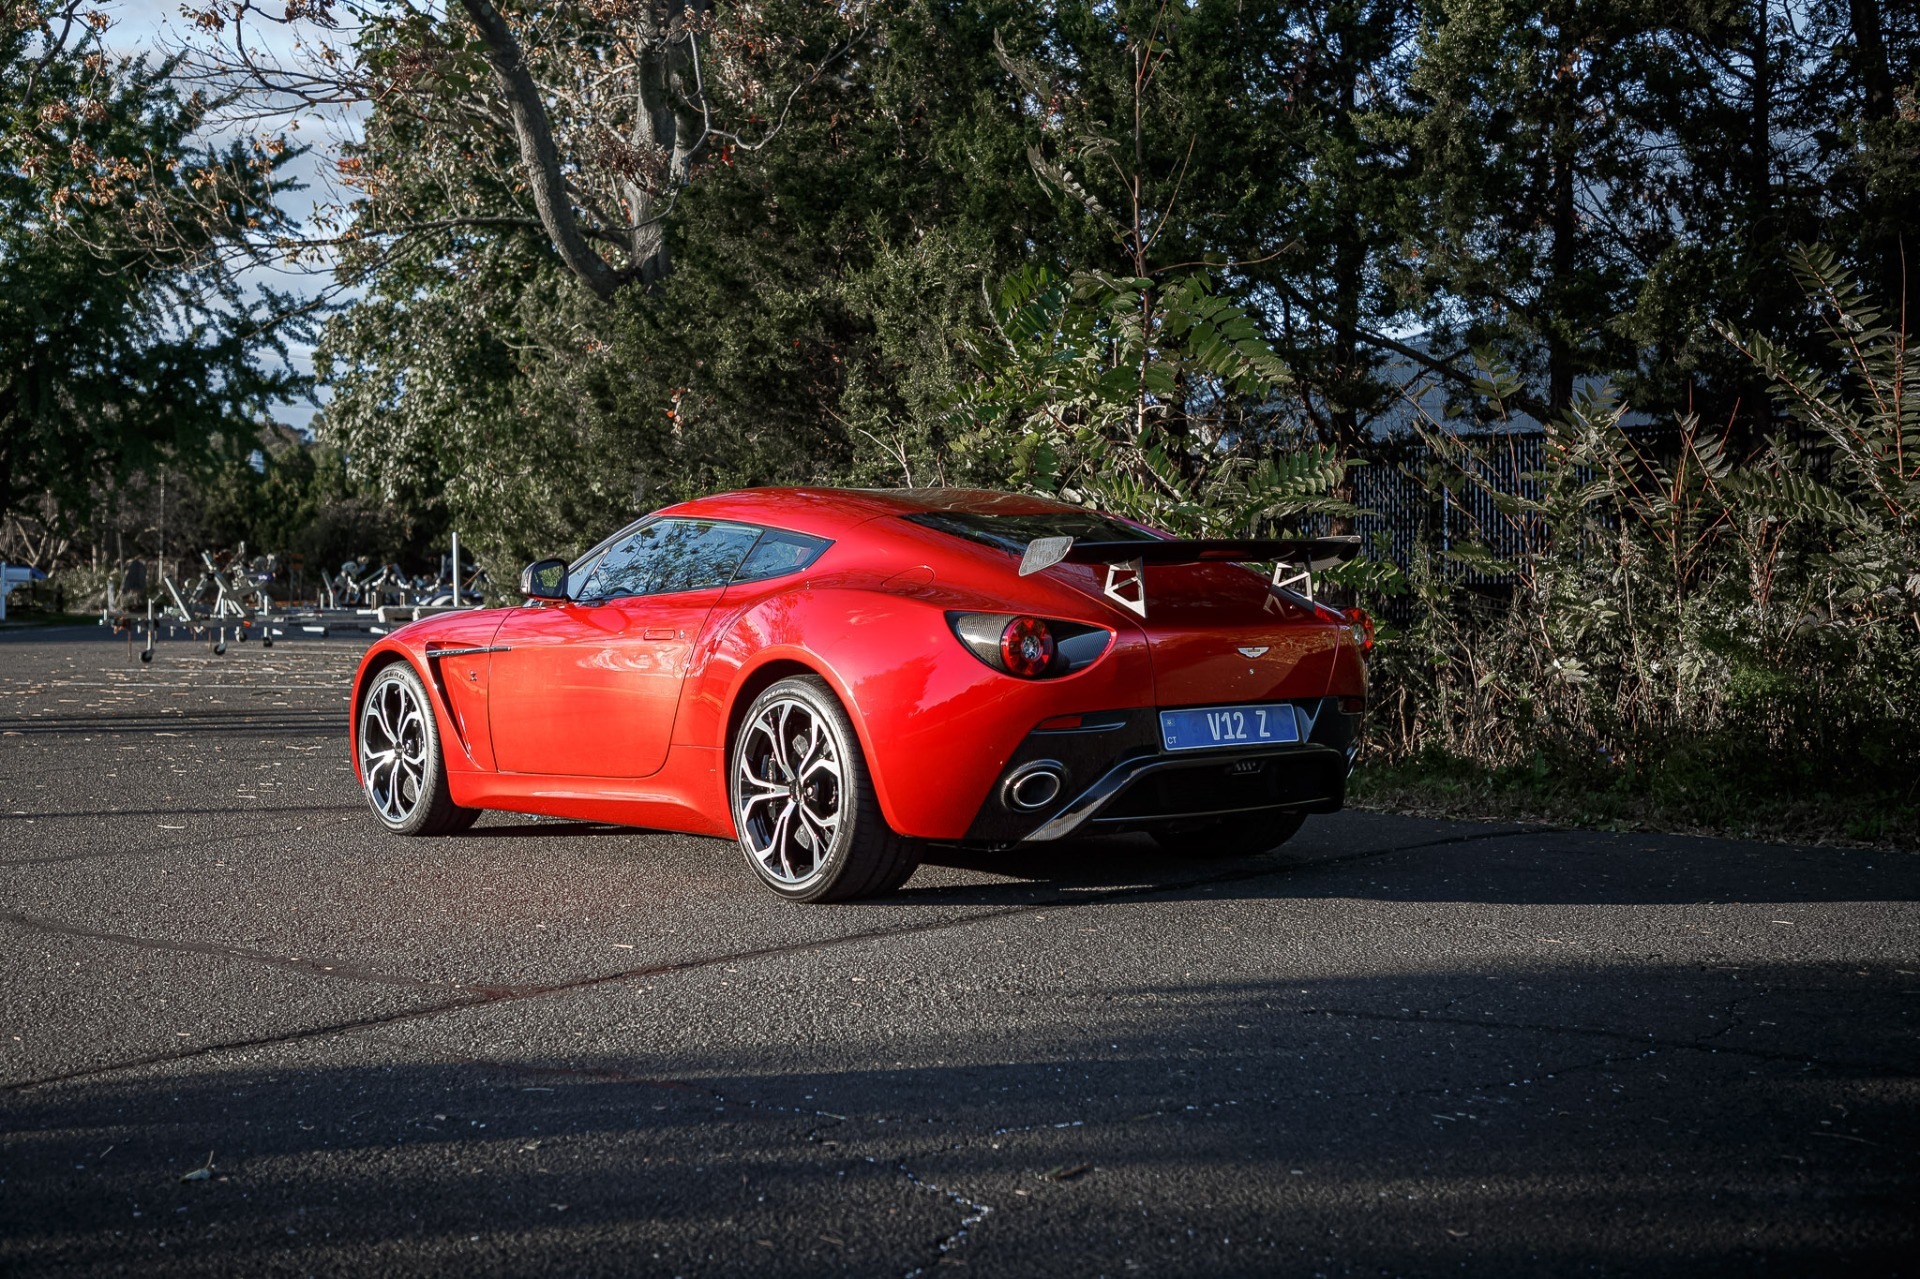 Used 2013 Aston Martin V12 Zagato Coupe For Sale In Greenwich, CT 3181_p34